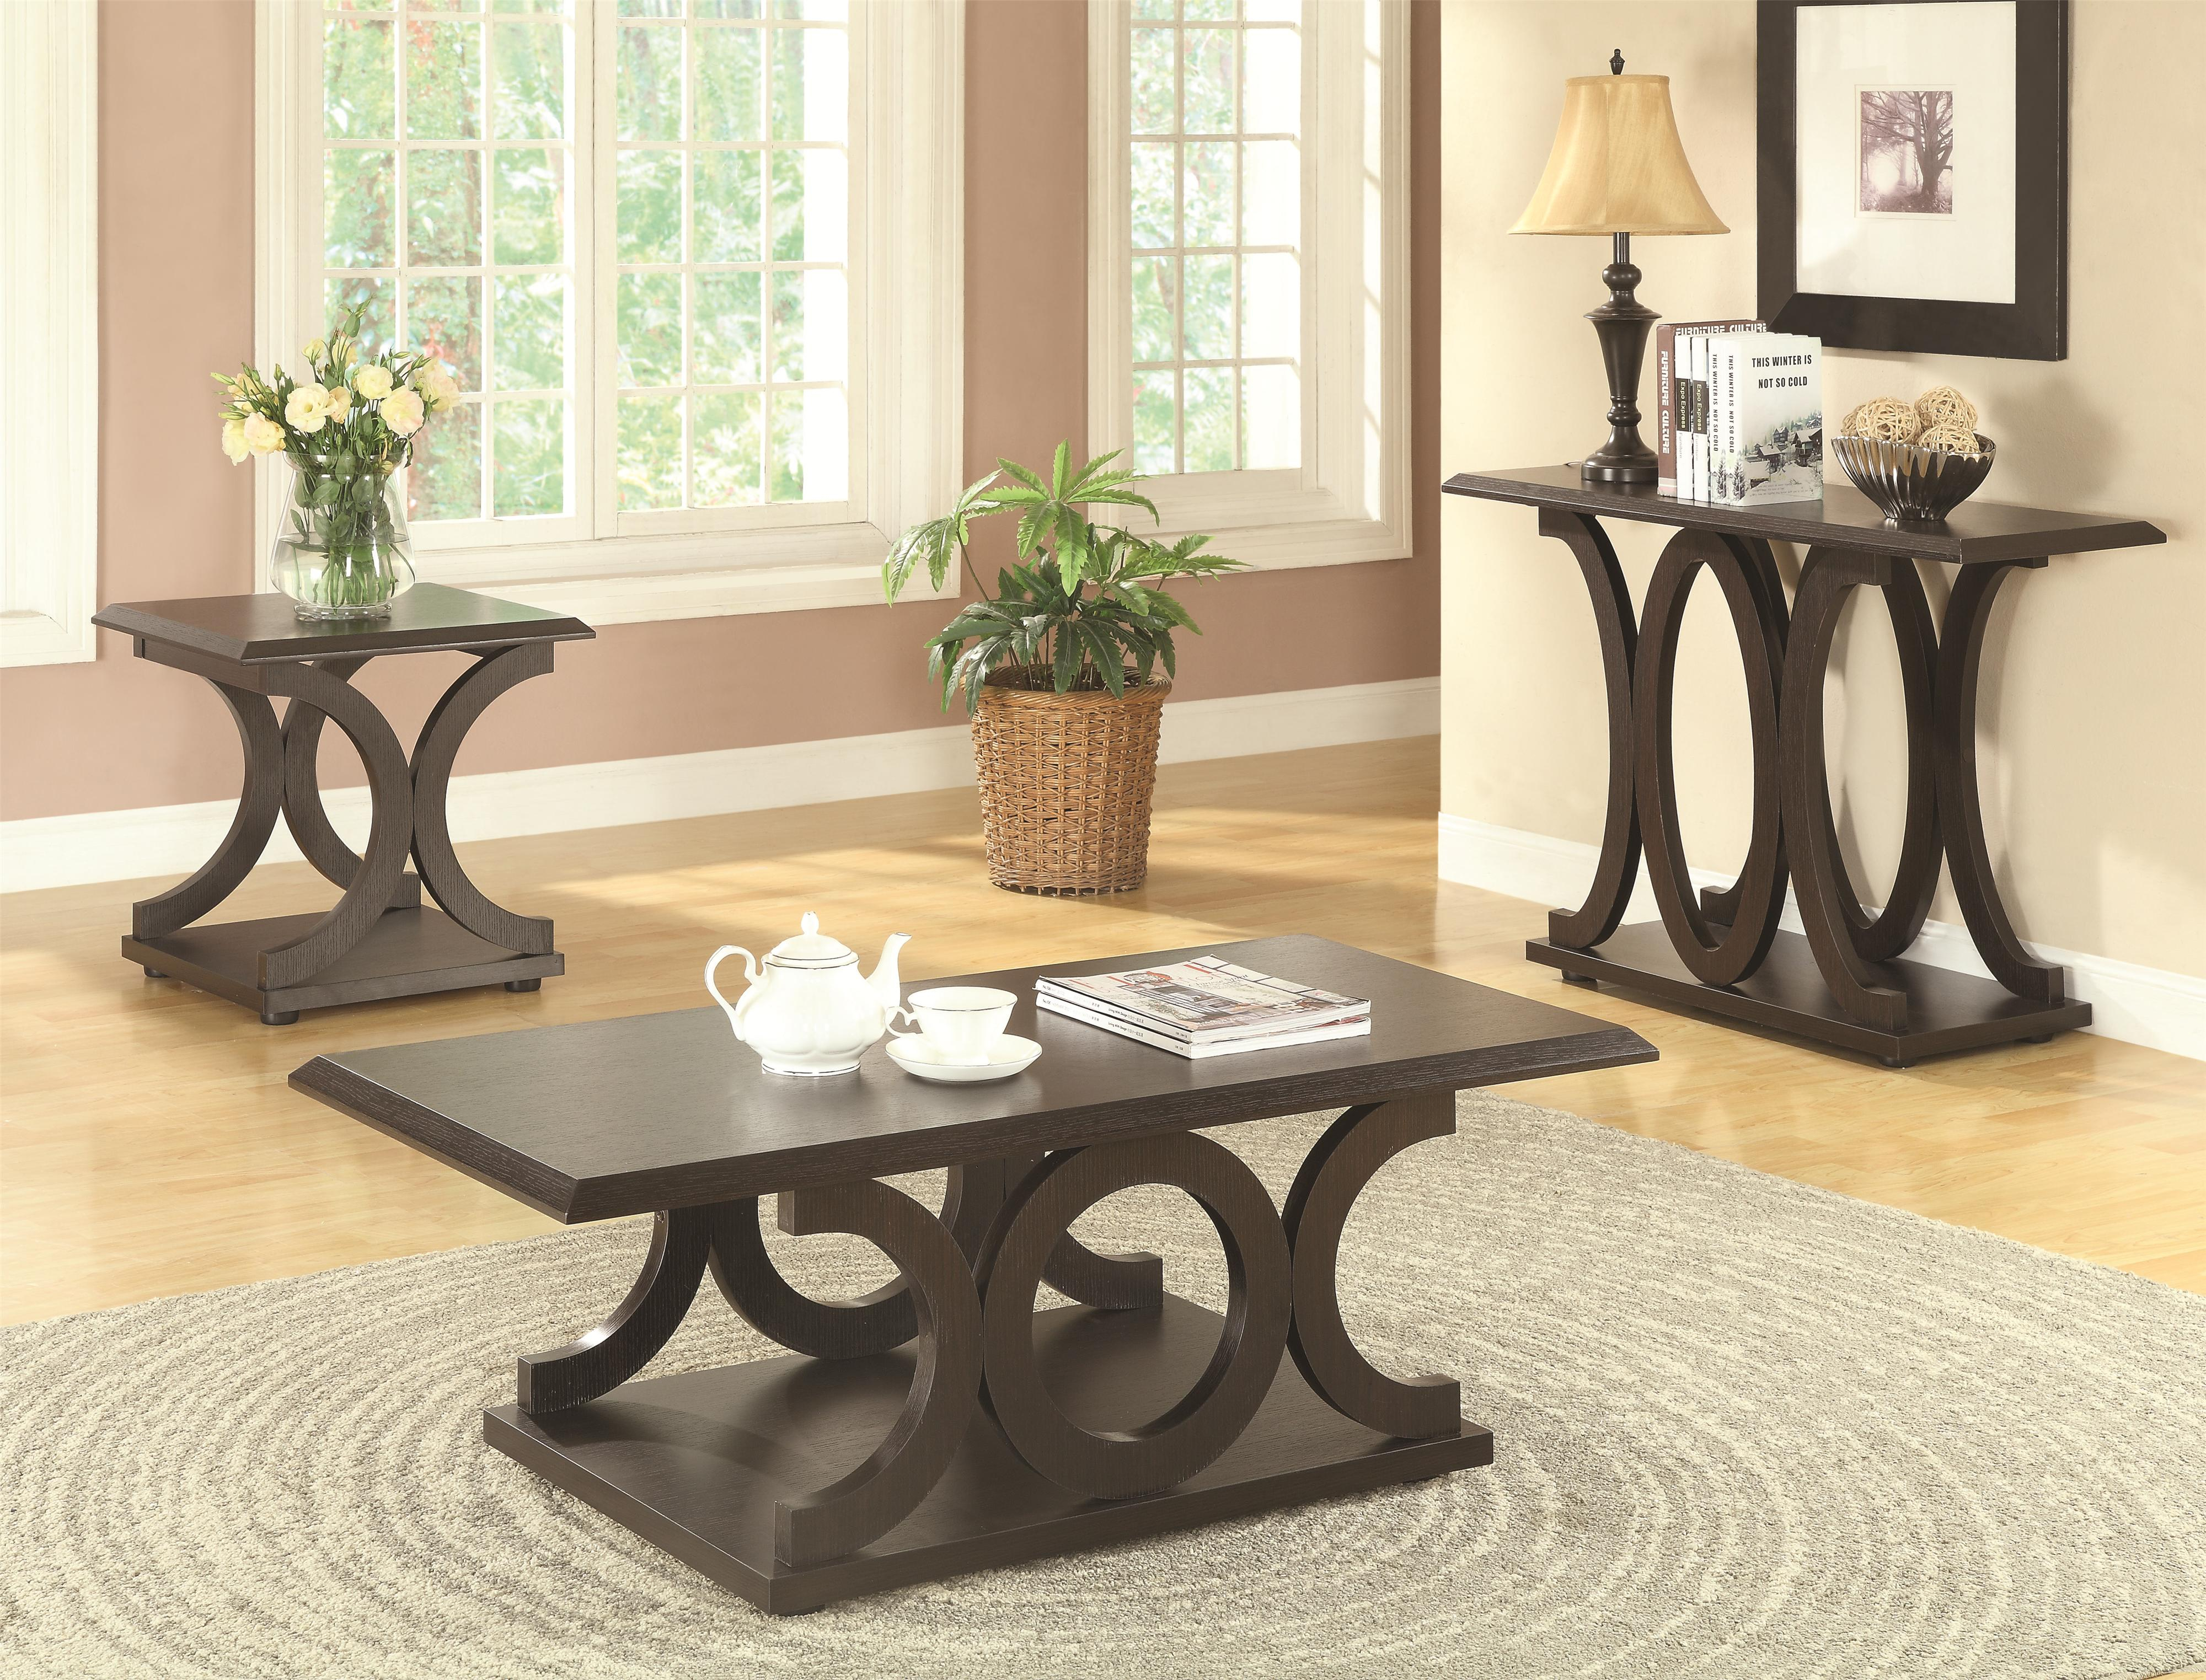 Coffee Tables C Shaped Coffee Table Co 703148 within sizing 4000 X 3047